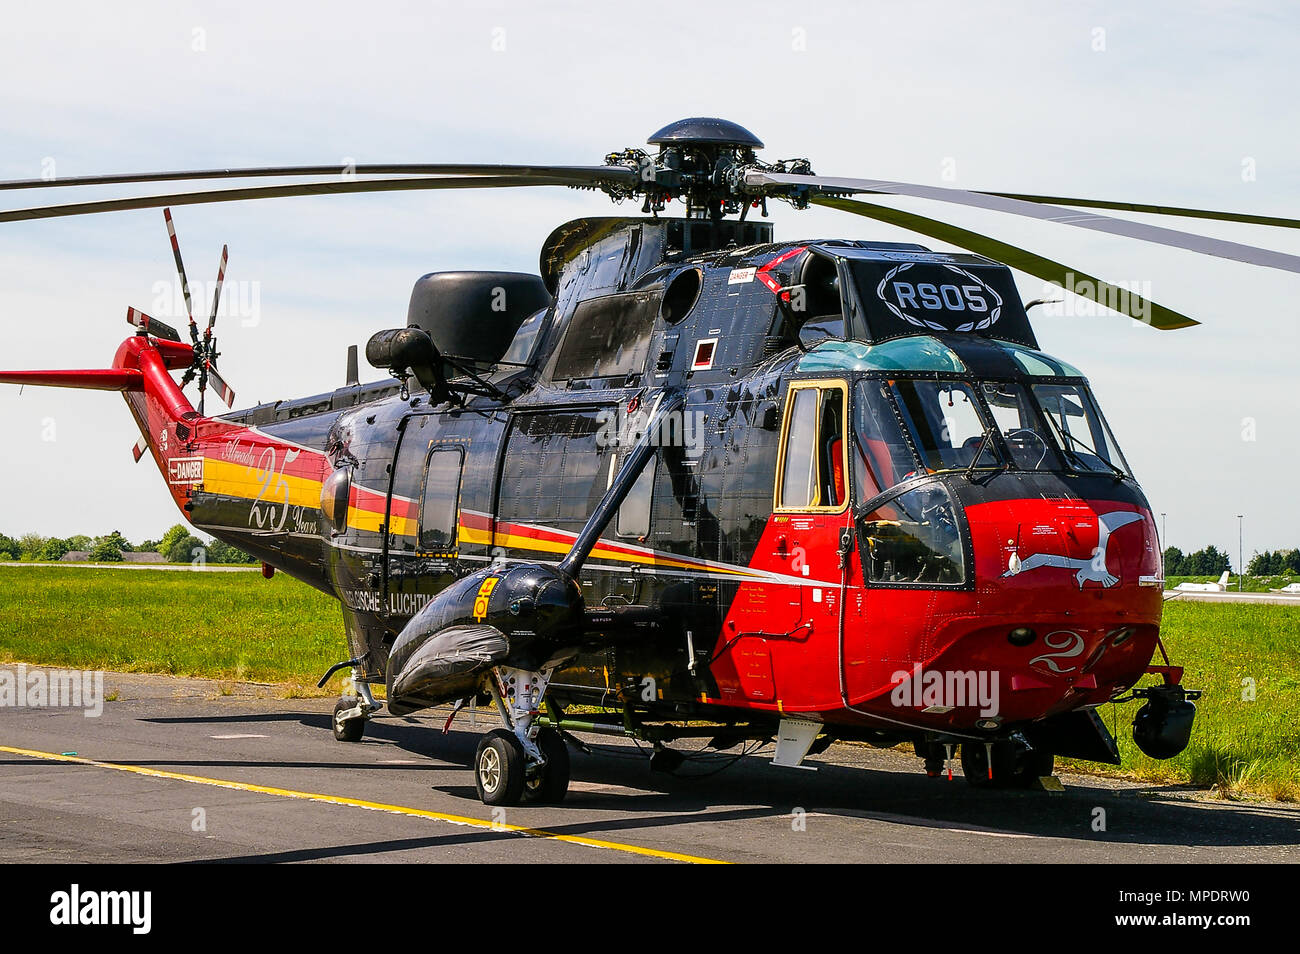 Belgian Sea King helicopter. Westland Sea King Mk48 RS05 with special 25th anniversary colour scheme. Force Aérienne Belge, Belgian Air Force - Stock Image